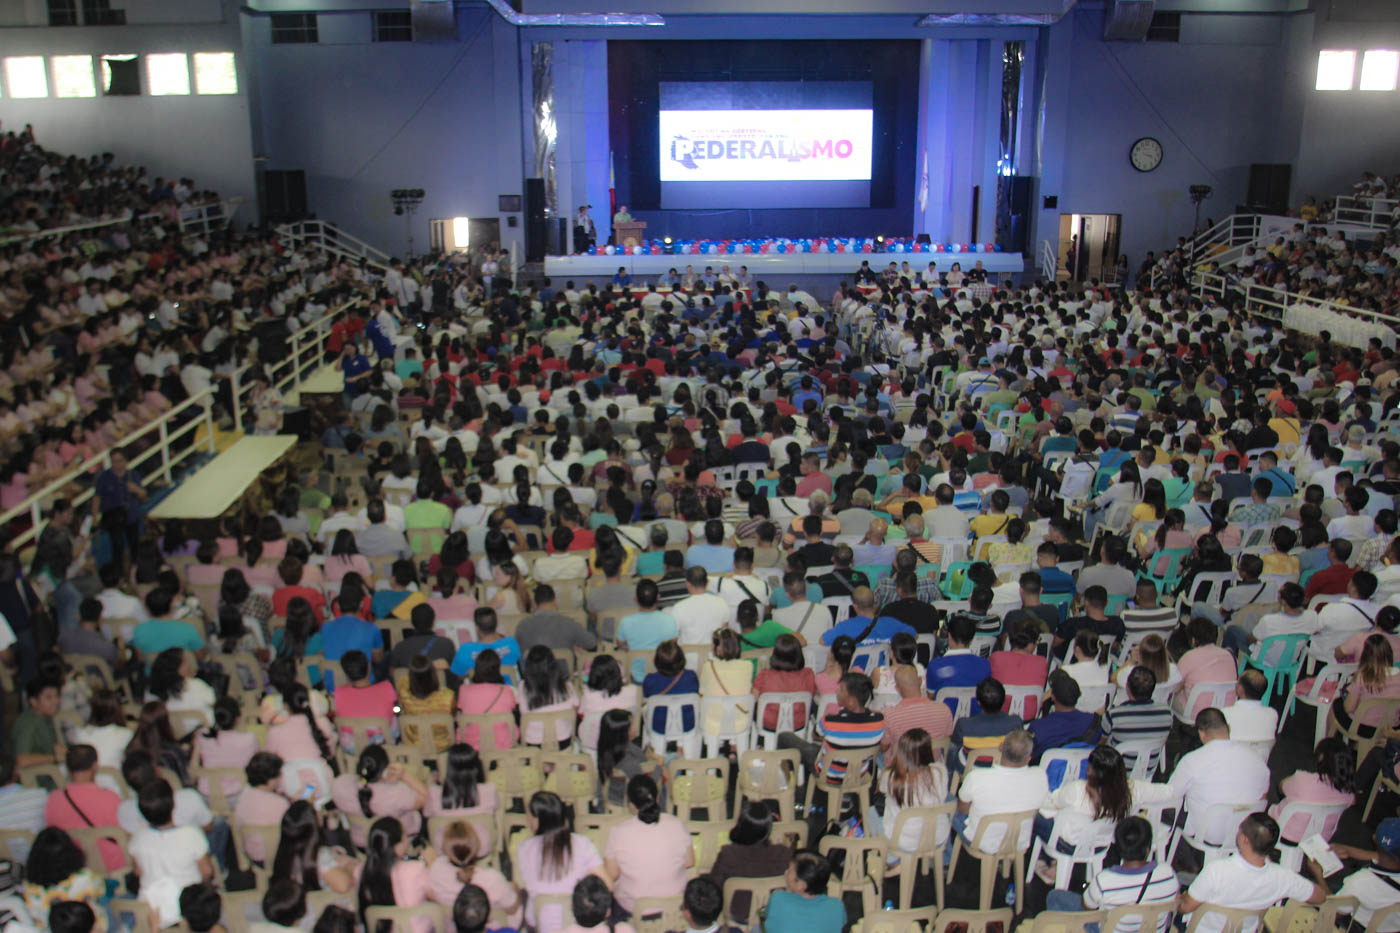 ROADSHOW. Participants gathered at the Regional Federalism Convention in Legazpi City on July 6, 2018. Photo by Rhaydz Barcia/Rappler